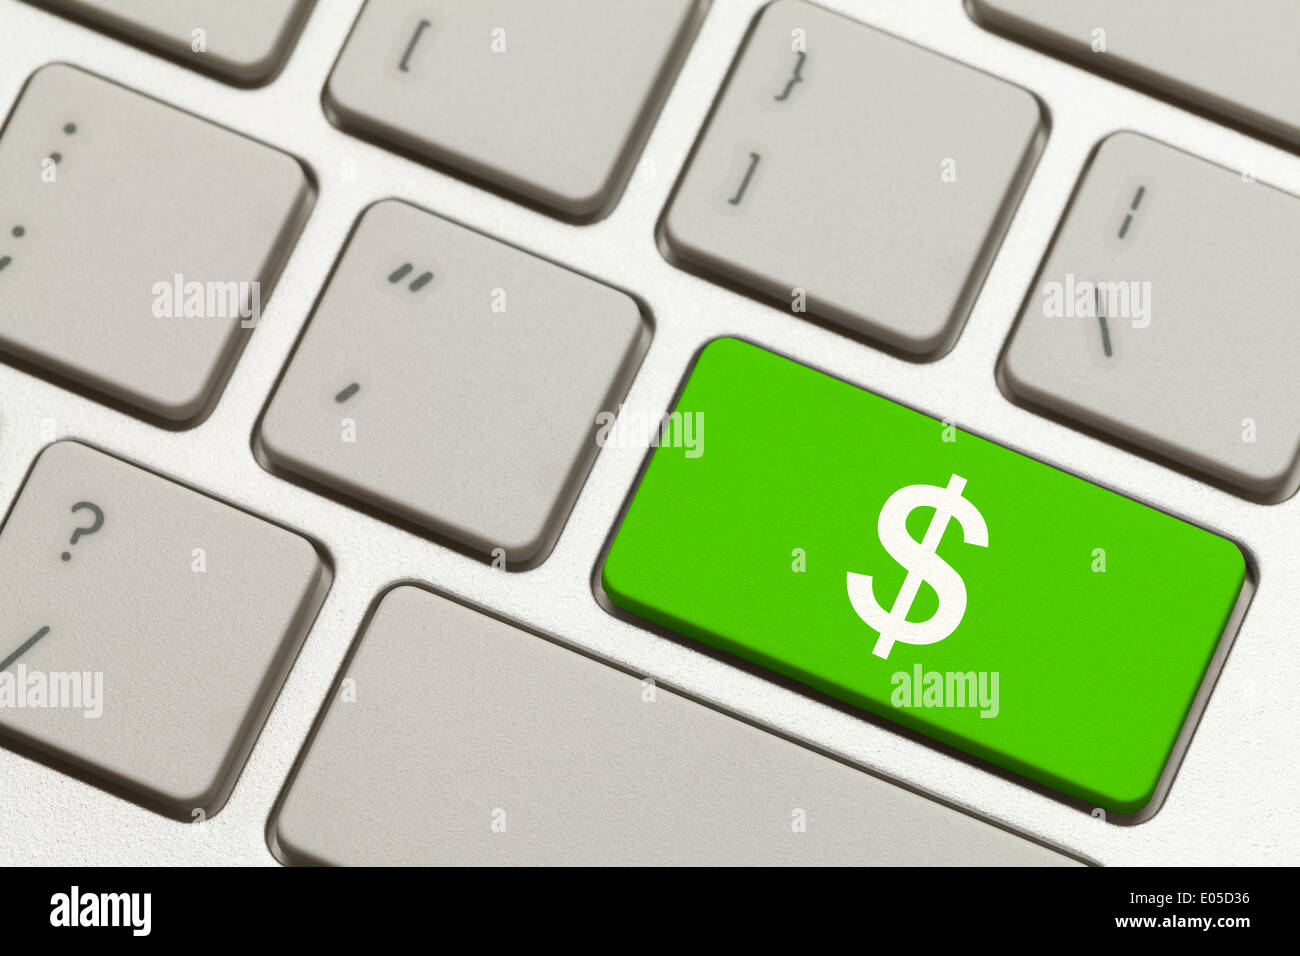 Close Up Of Green Money Key With Cash Symbol On A Keyboard Stock